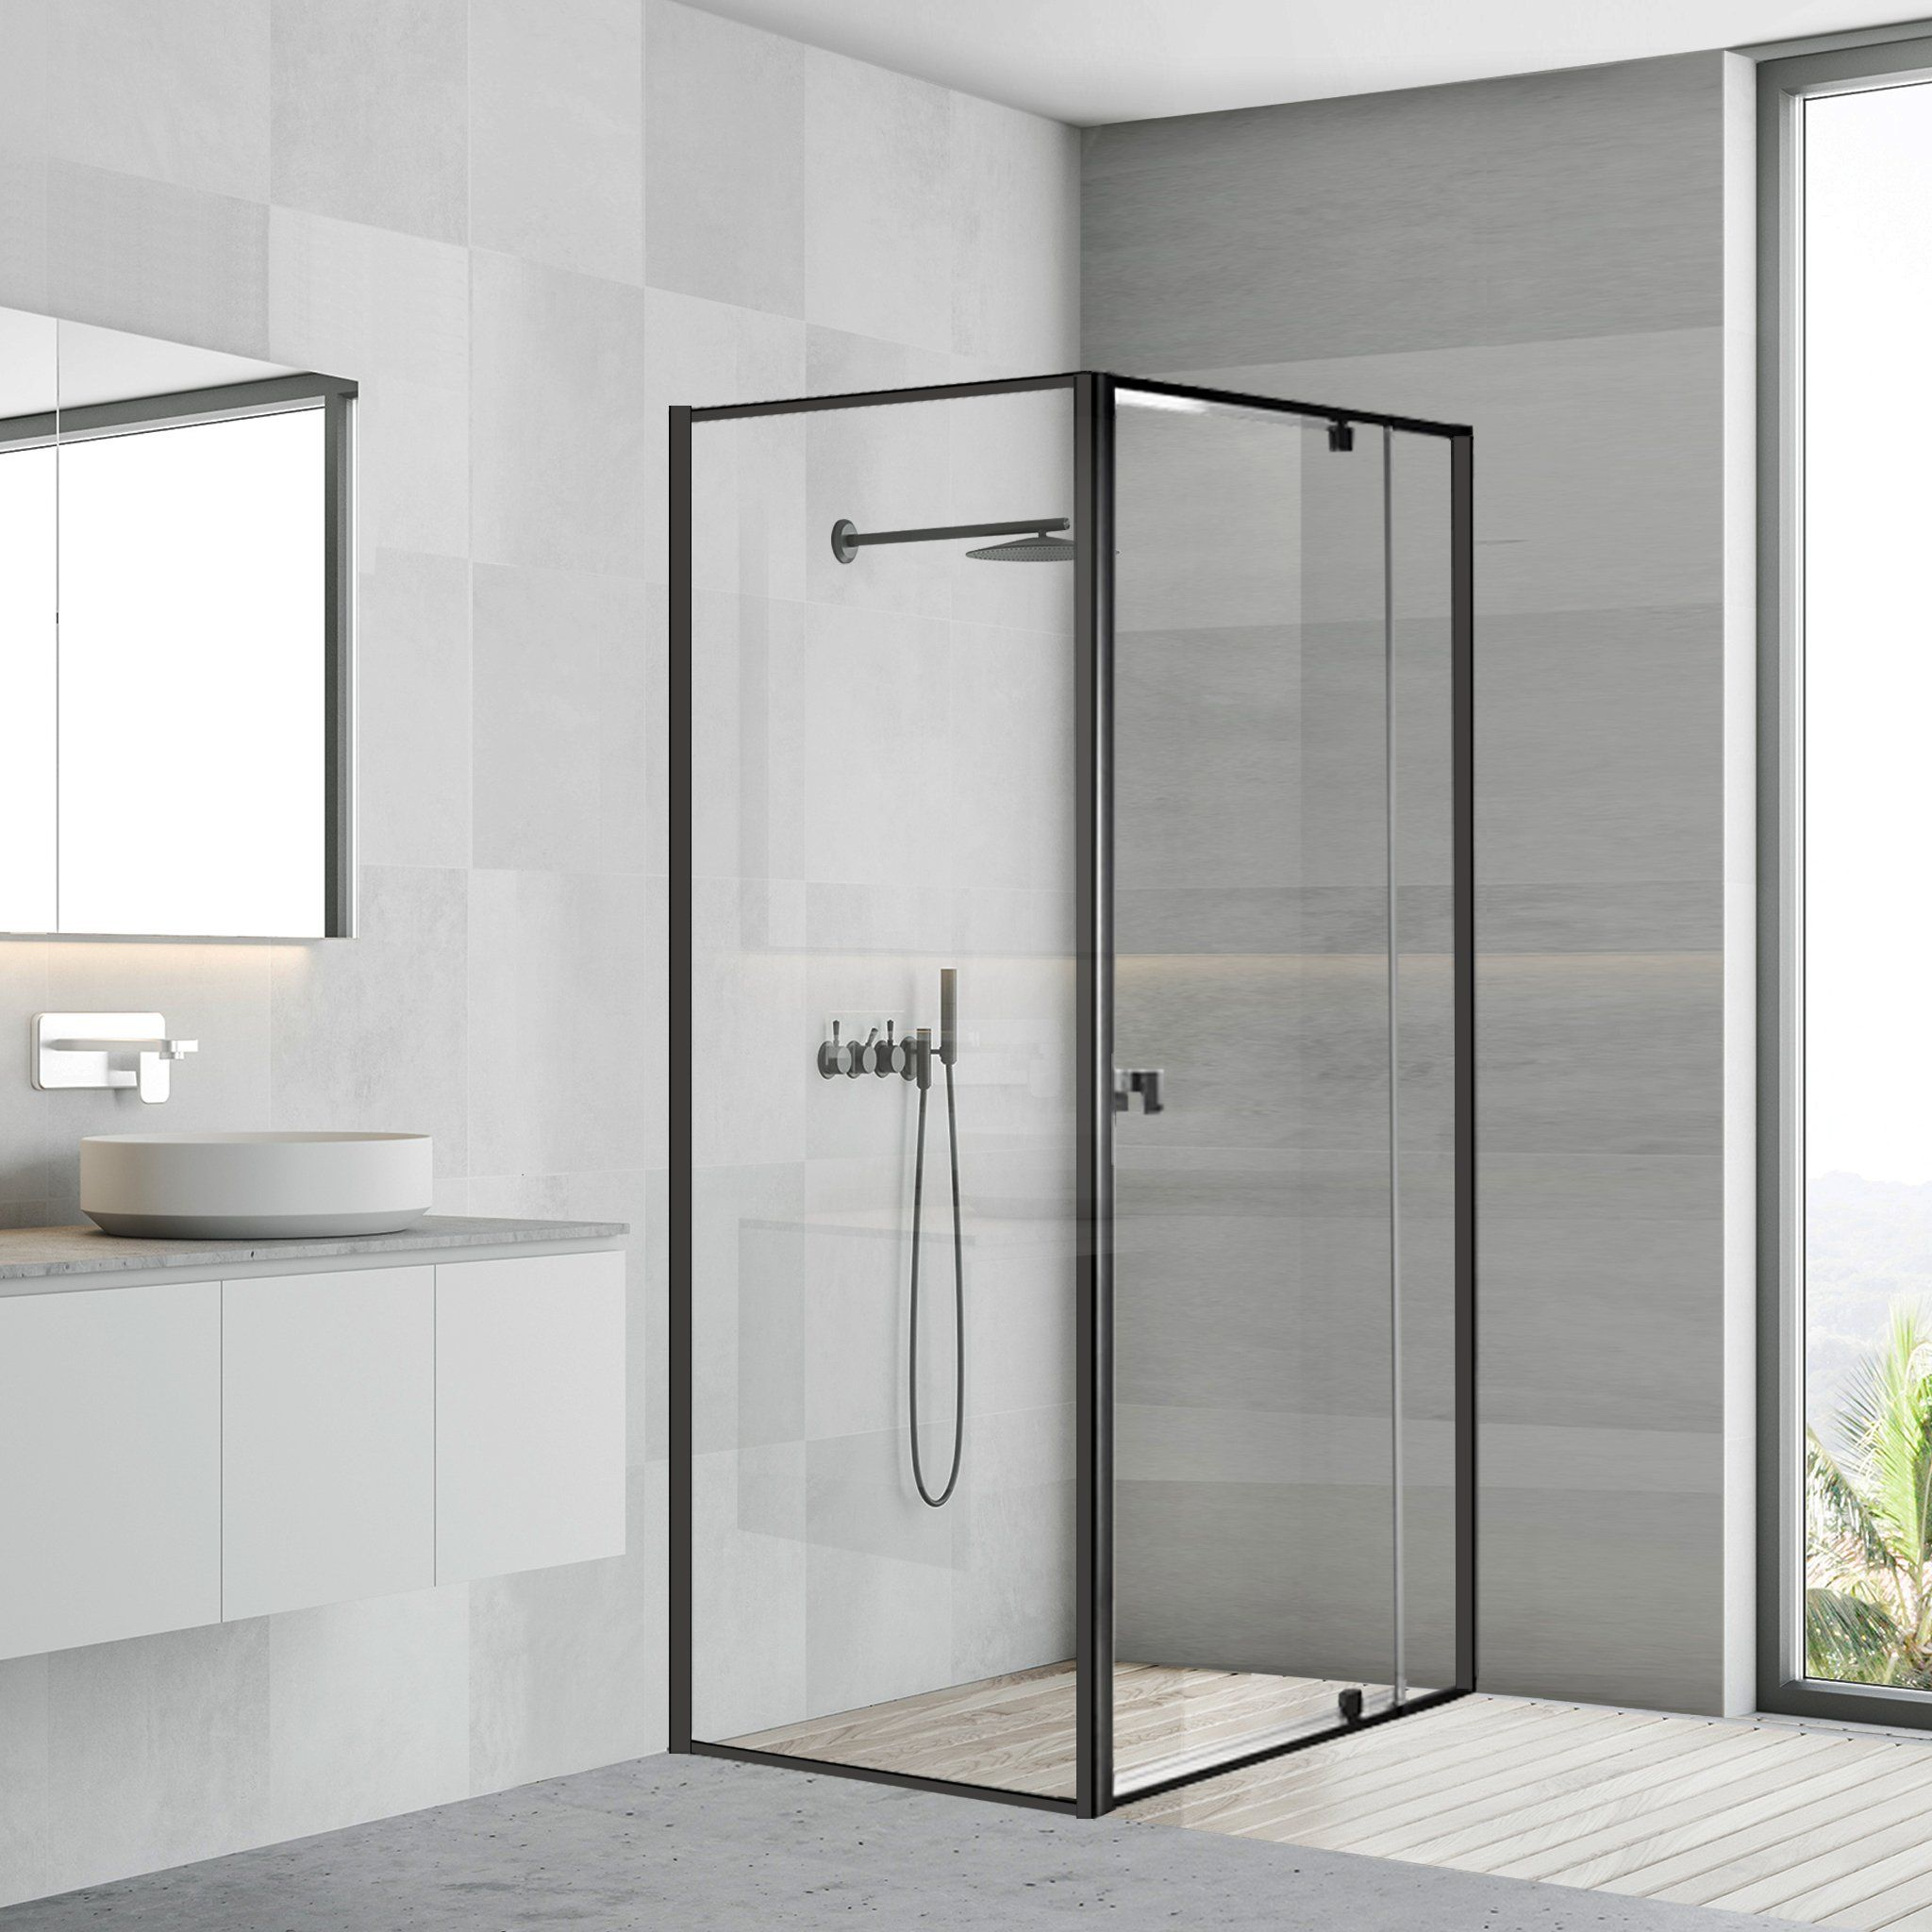 Improve The Aesthetic Appeal Of Your Bathroom With Custom Frameless Shower Screens